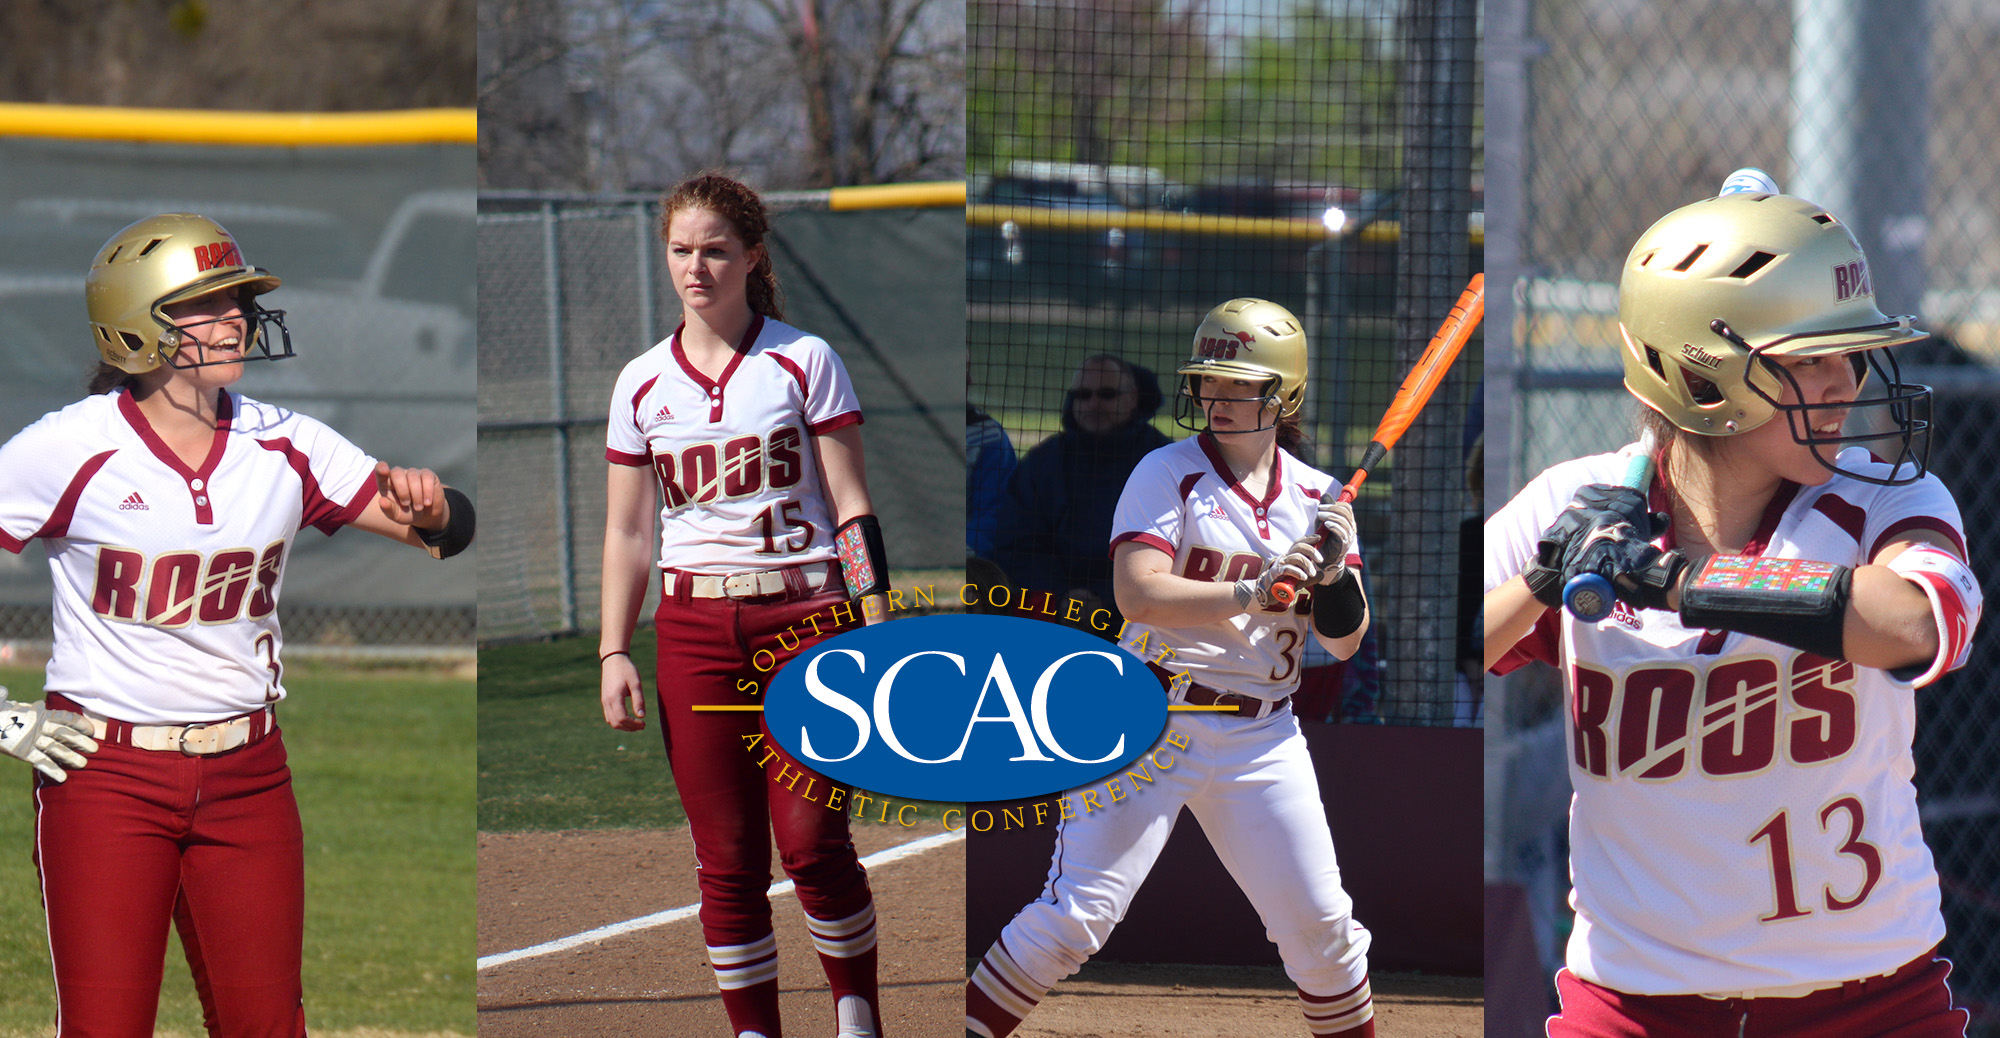 Four From 'Roo Softball Named All-SCAC